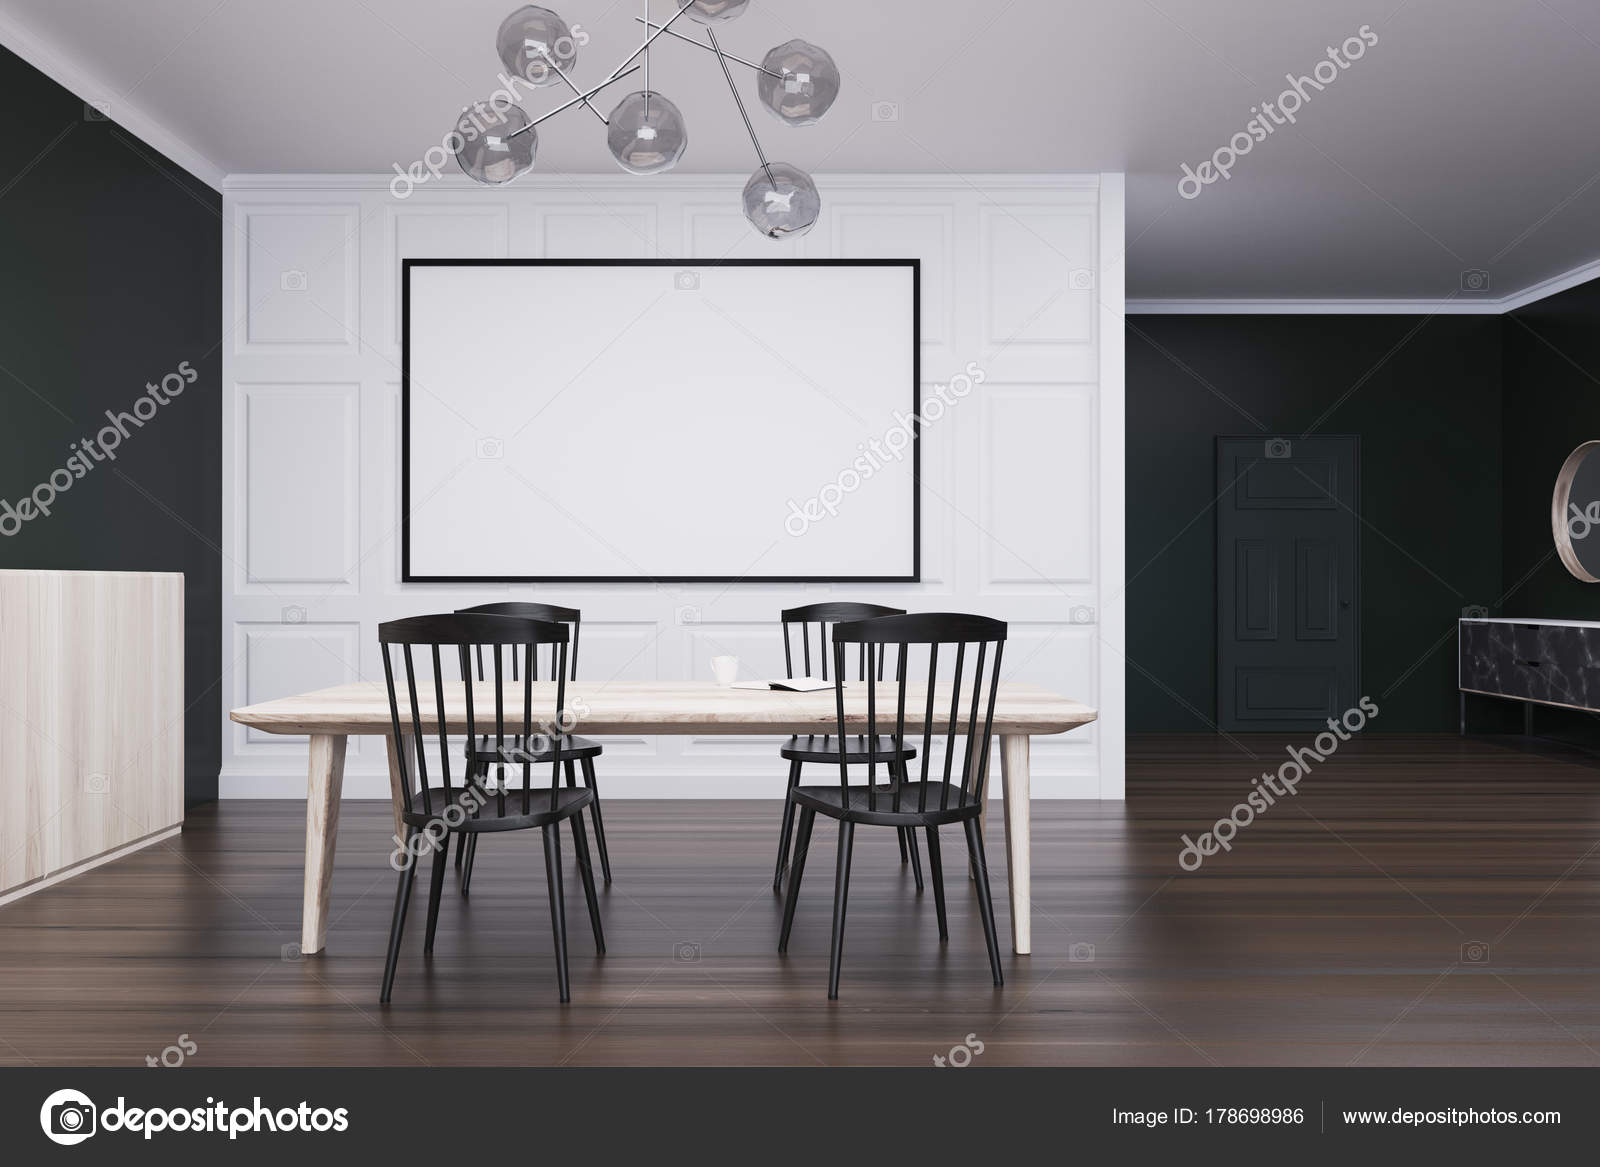 Esszimmer Schwarz Weiß Schwarz Weiß Esszimmer Poster Und Tabelle Stockfoto